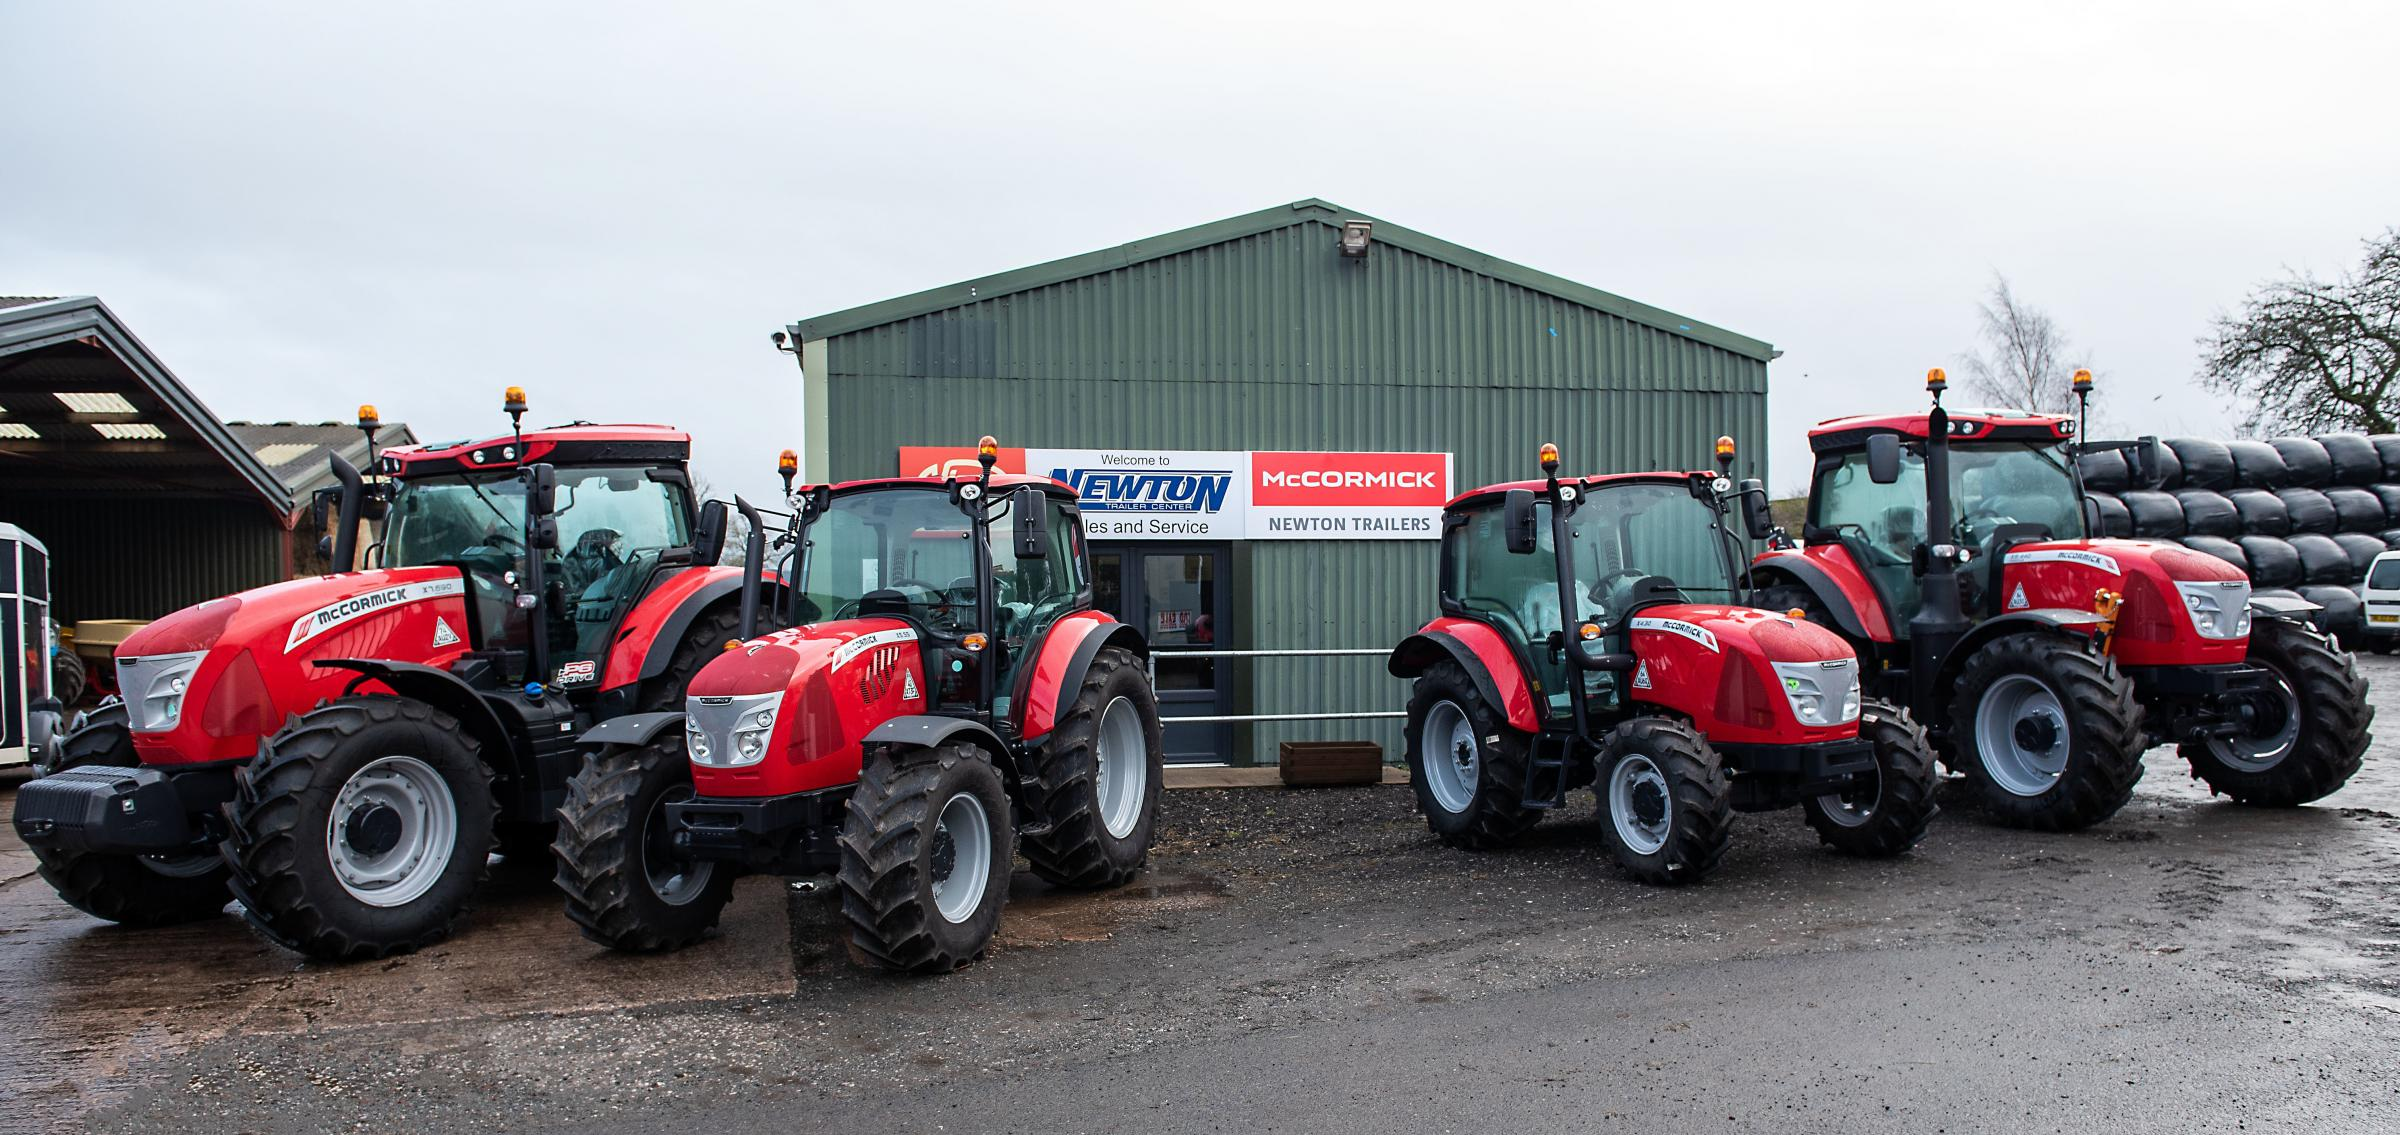 Cumbria tractor franchise makes switch